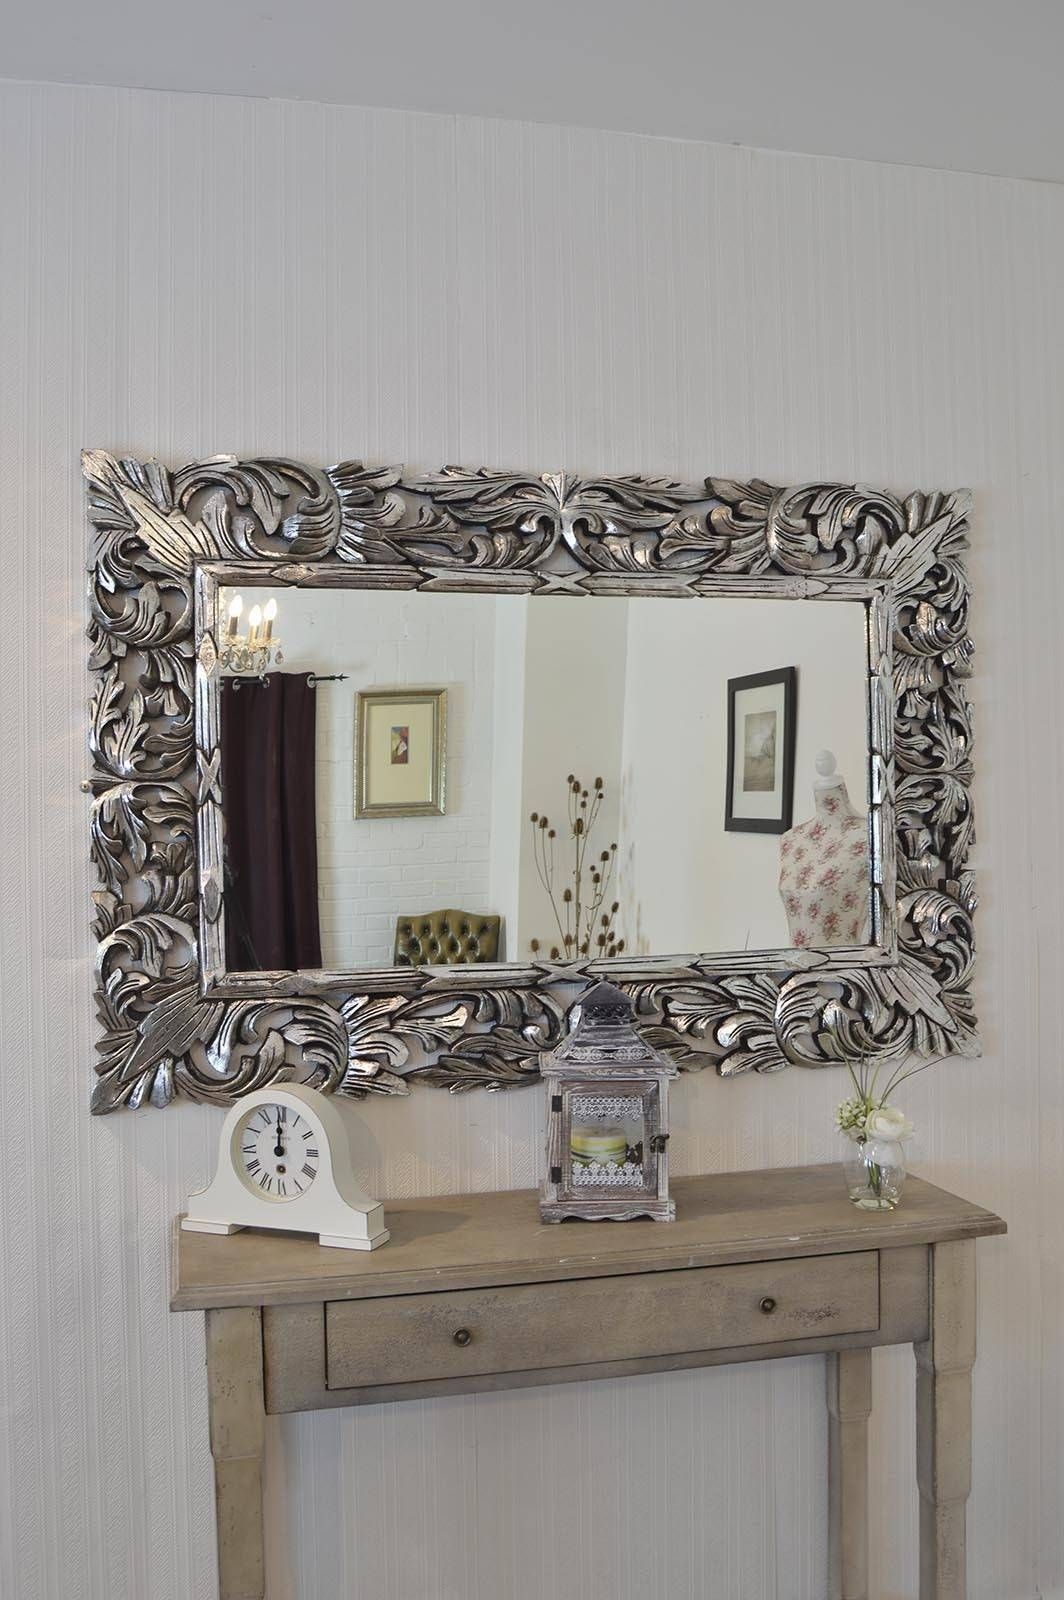 Large Silver Wall Mirror 57 Nice Decorating With Large Ornate Wall In Silver Ornate Wall Mirrors (View 15 of 25)